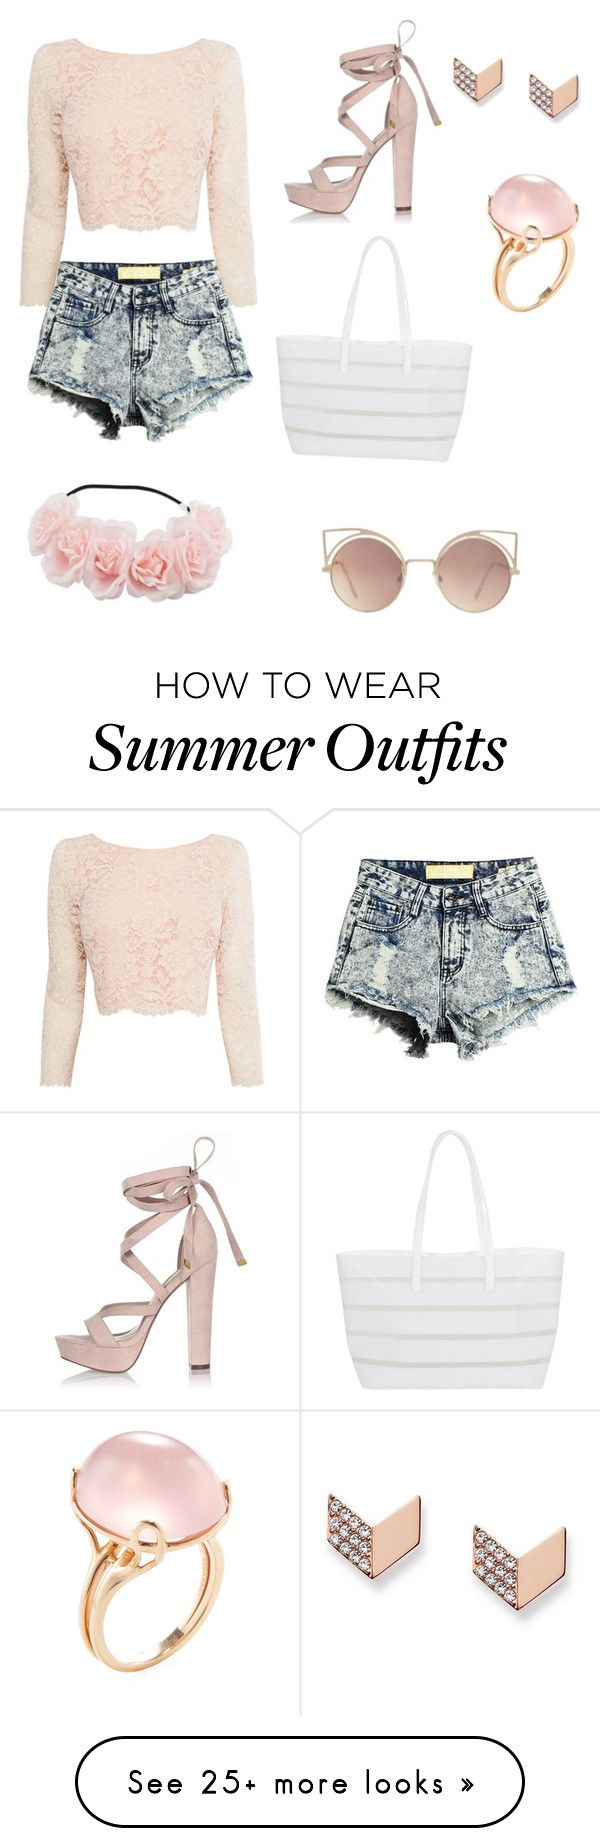 """Cute Summer Outfit"" by kaylafayesmith on Polyvore featuring Coast, River Island, BUCO, MANGO, FOSSIL and Goshwara"